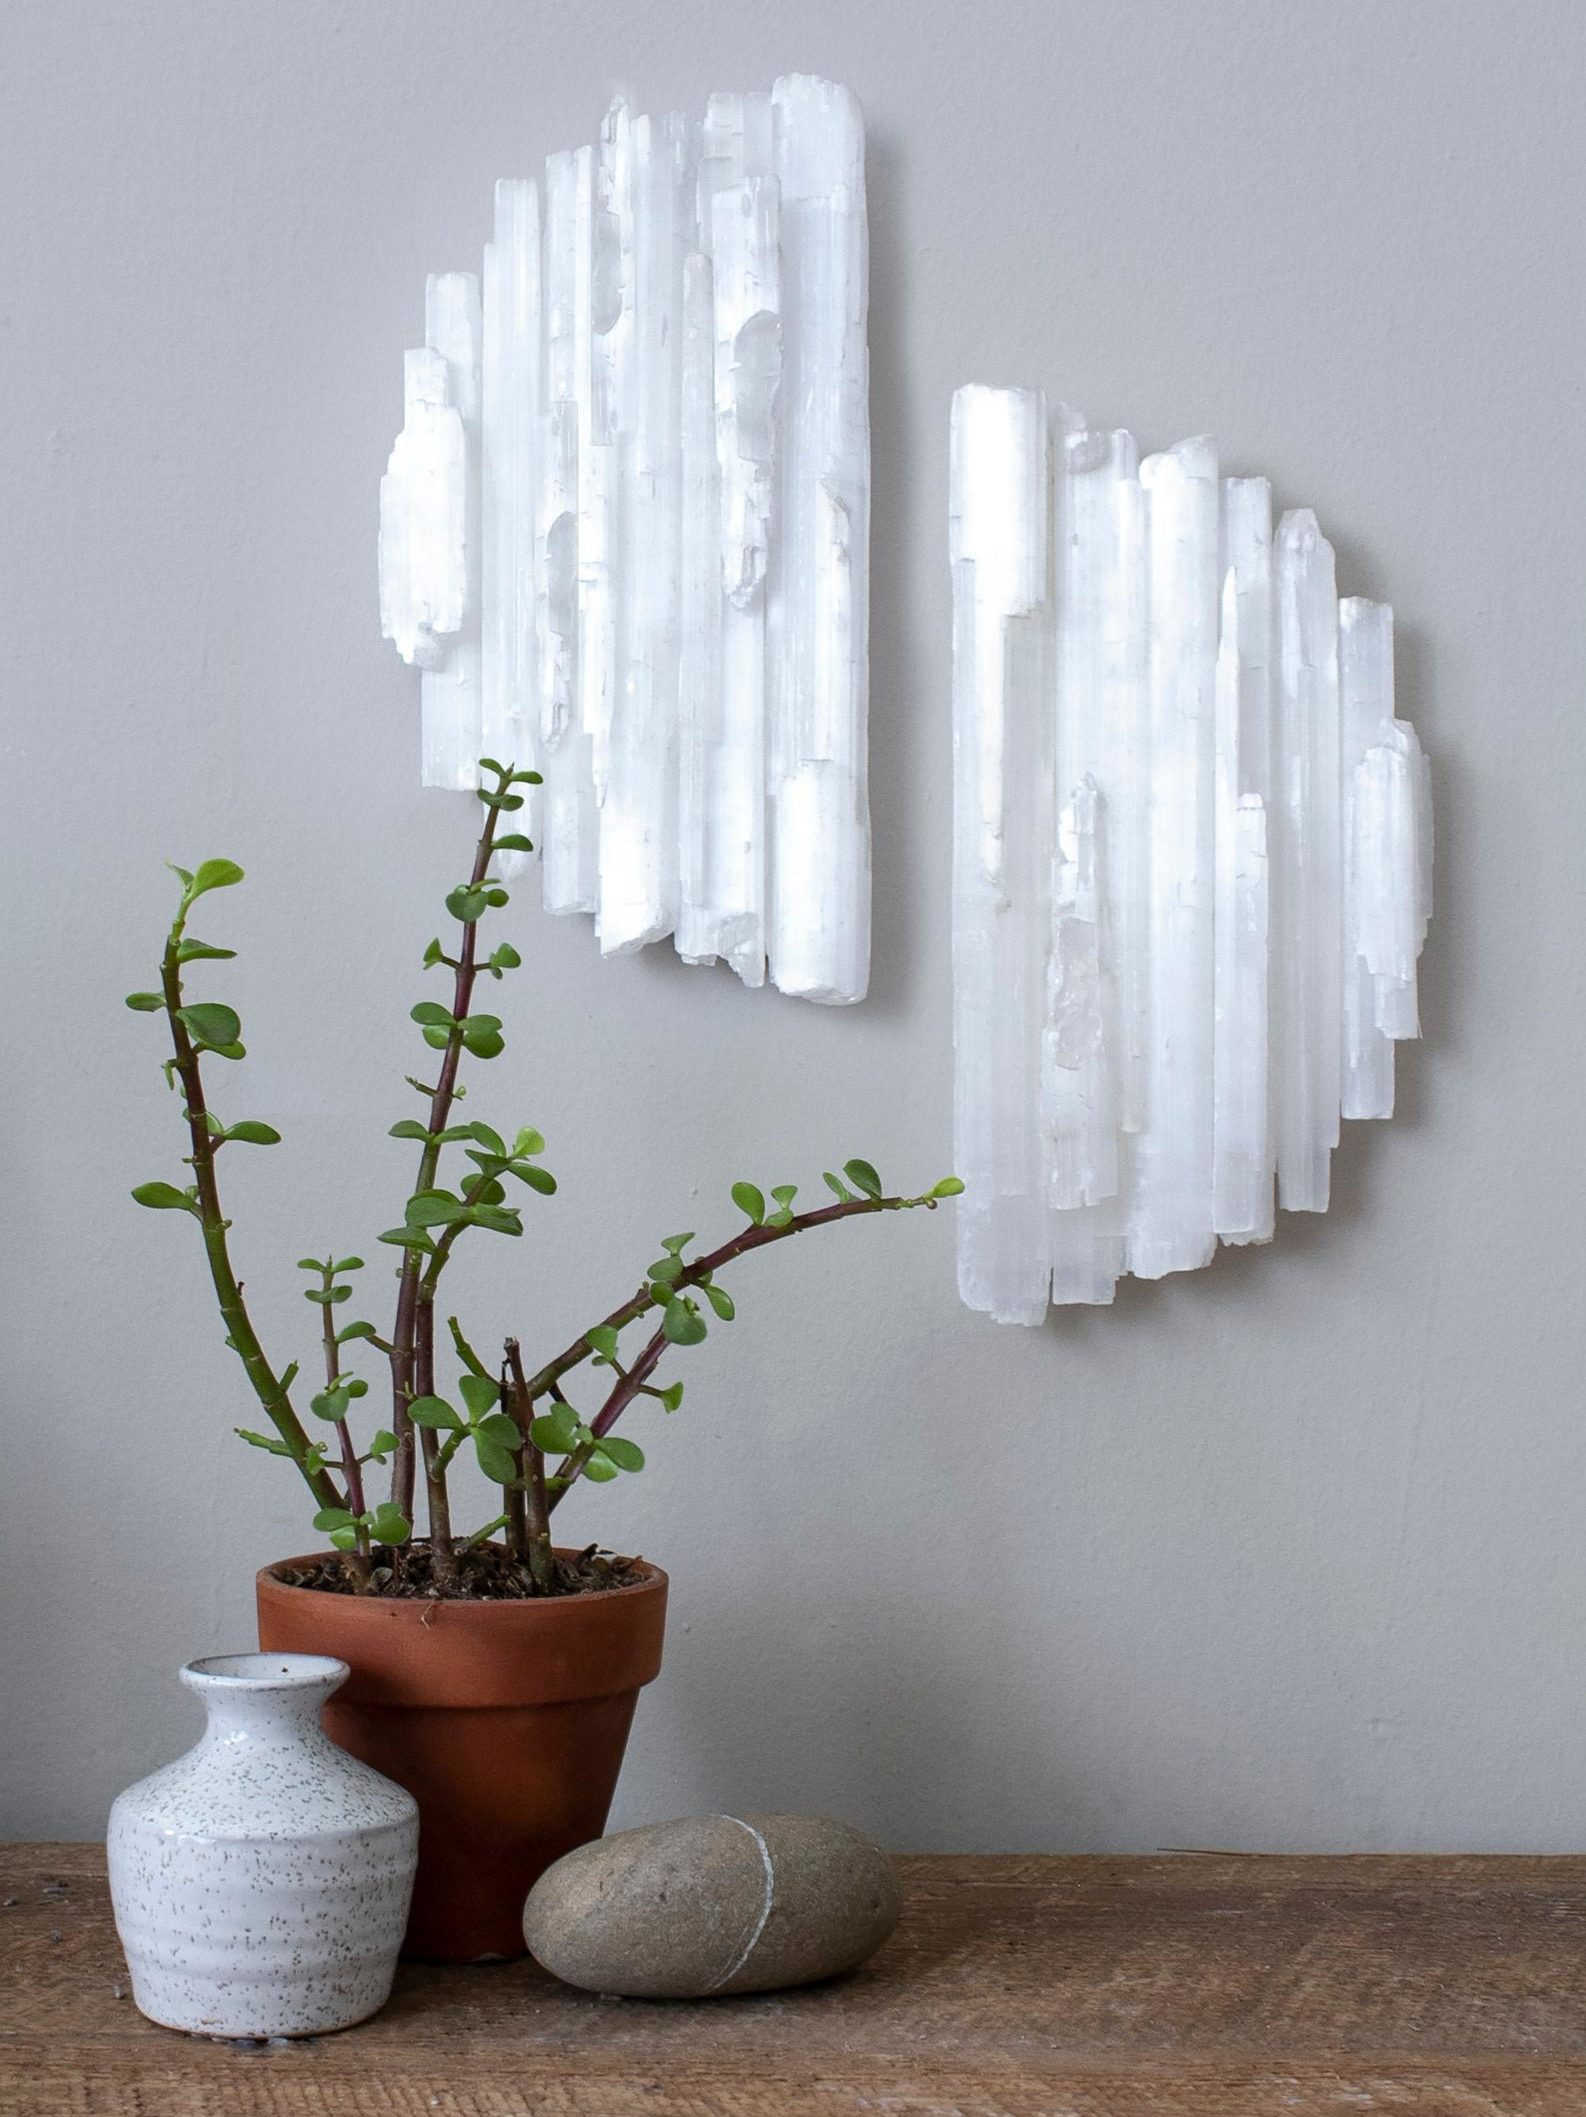 How to Use Selenite: Properties, Benefits, and Meaning 2